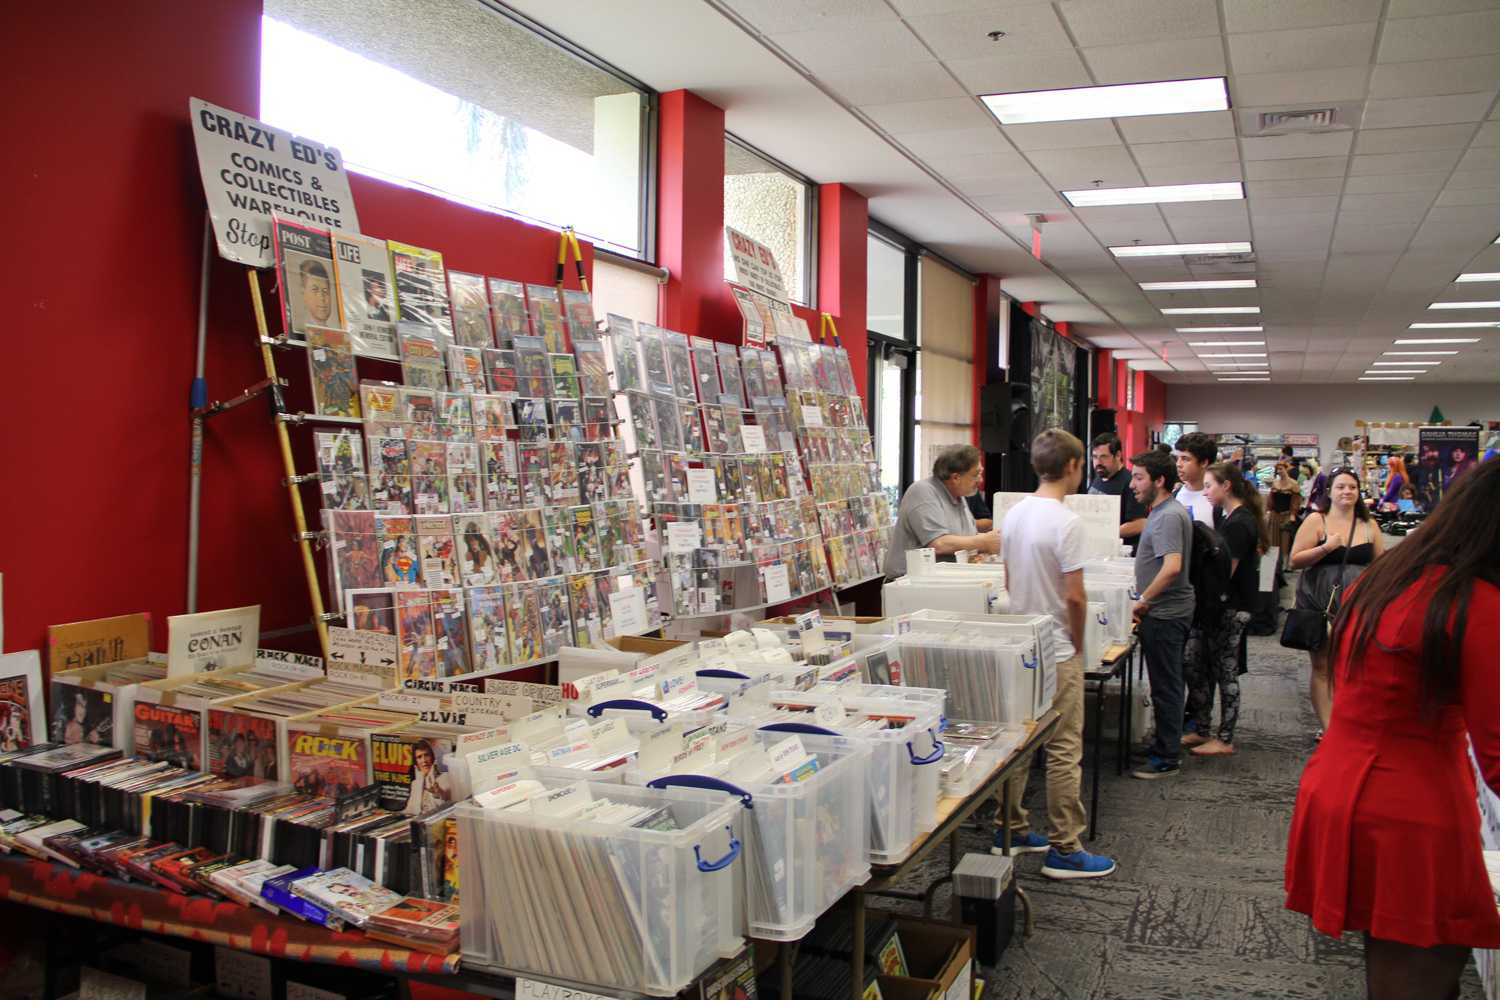 Many comic stores in the area had booths selling comics that were old, new, rare and common.